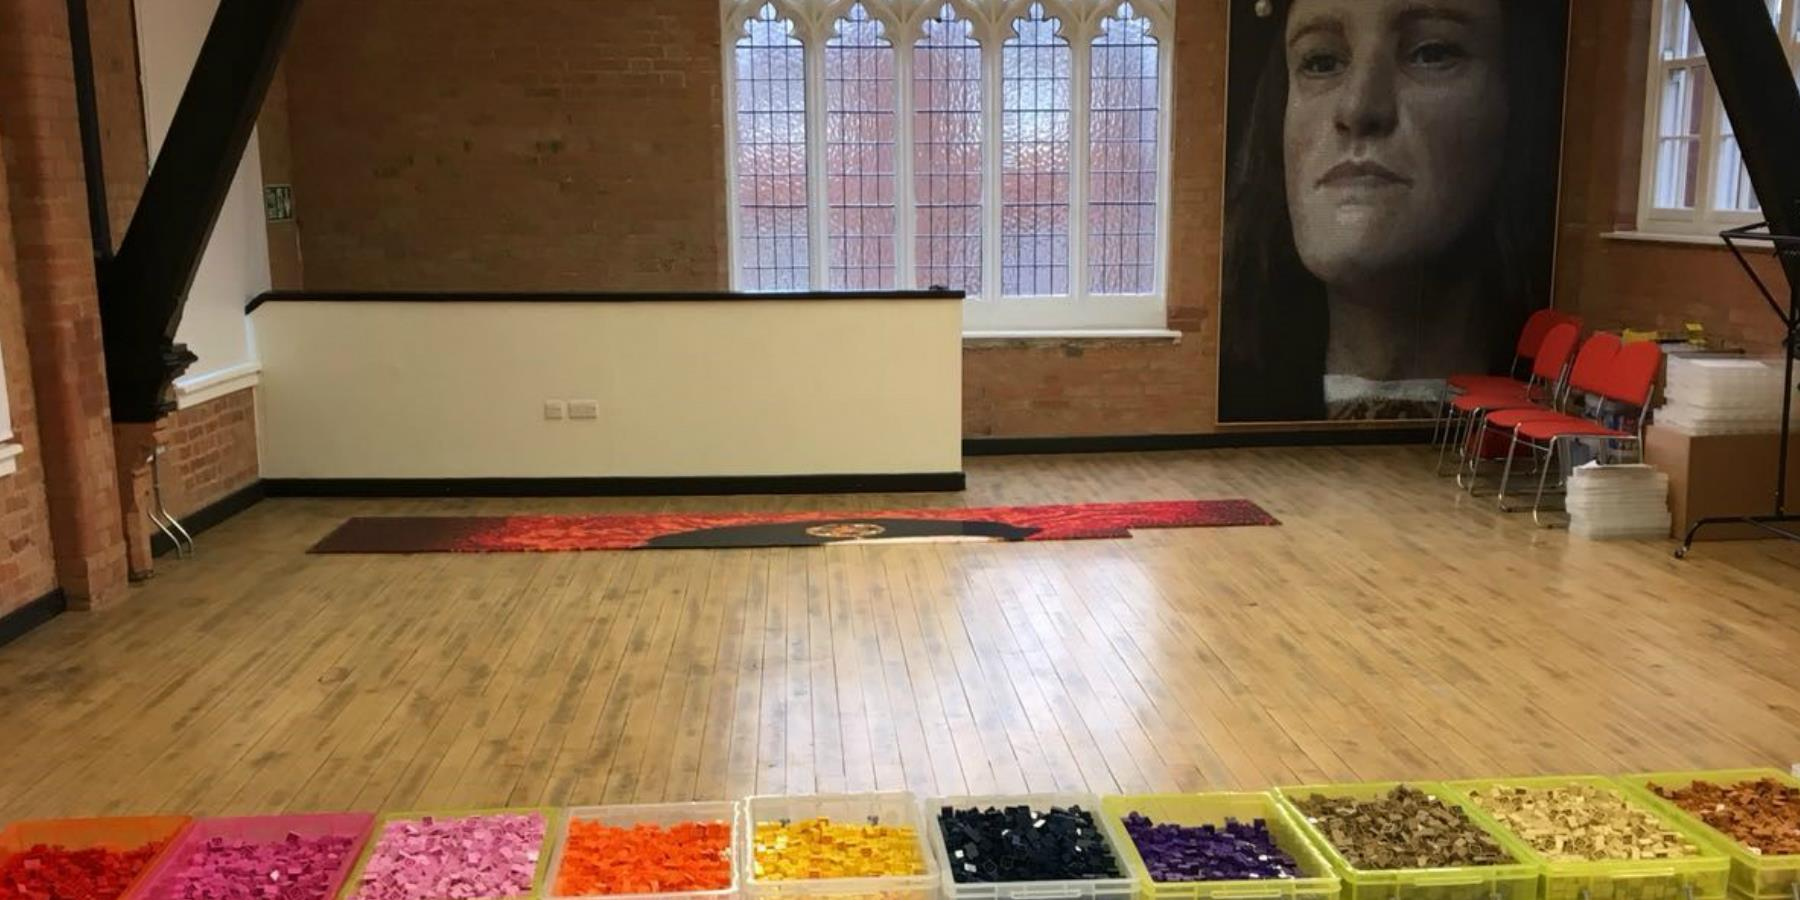 King Richard III Visitor Centre, LEGO Event